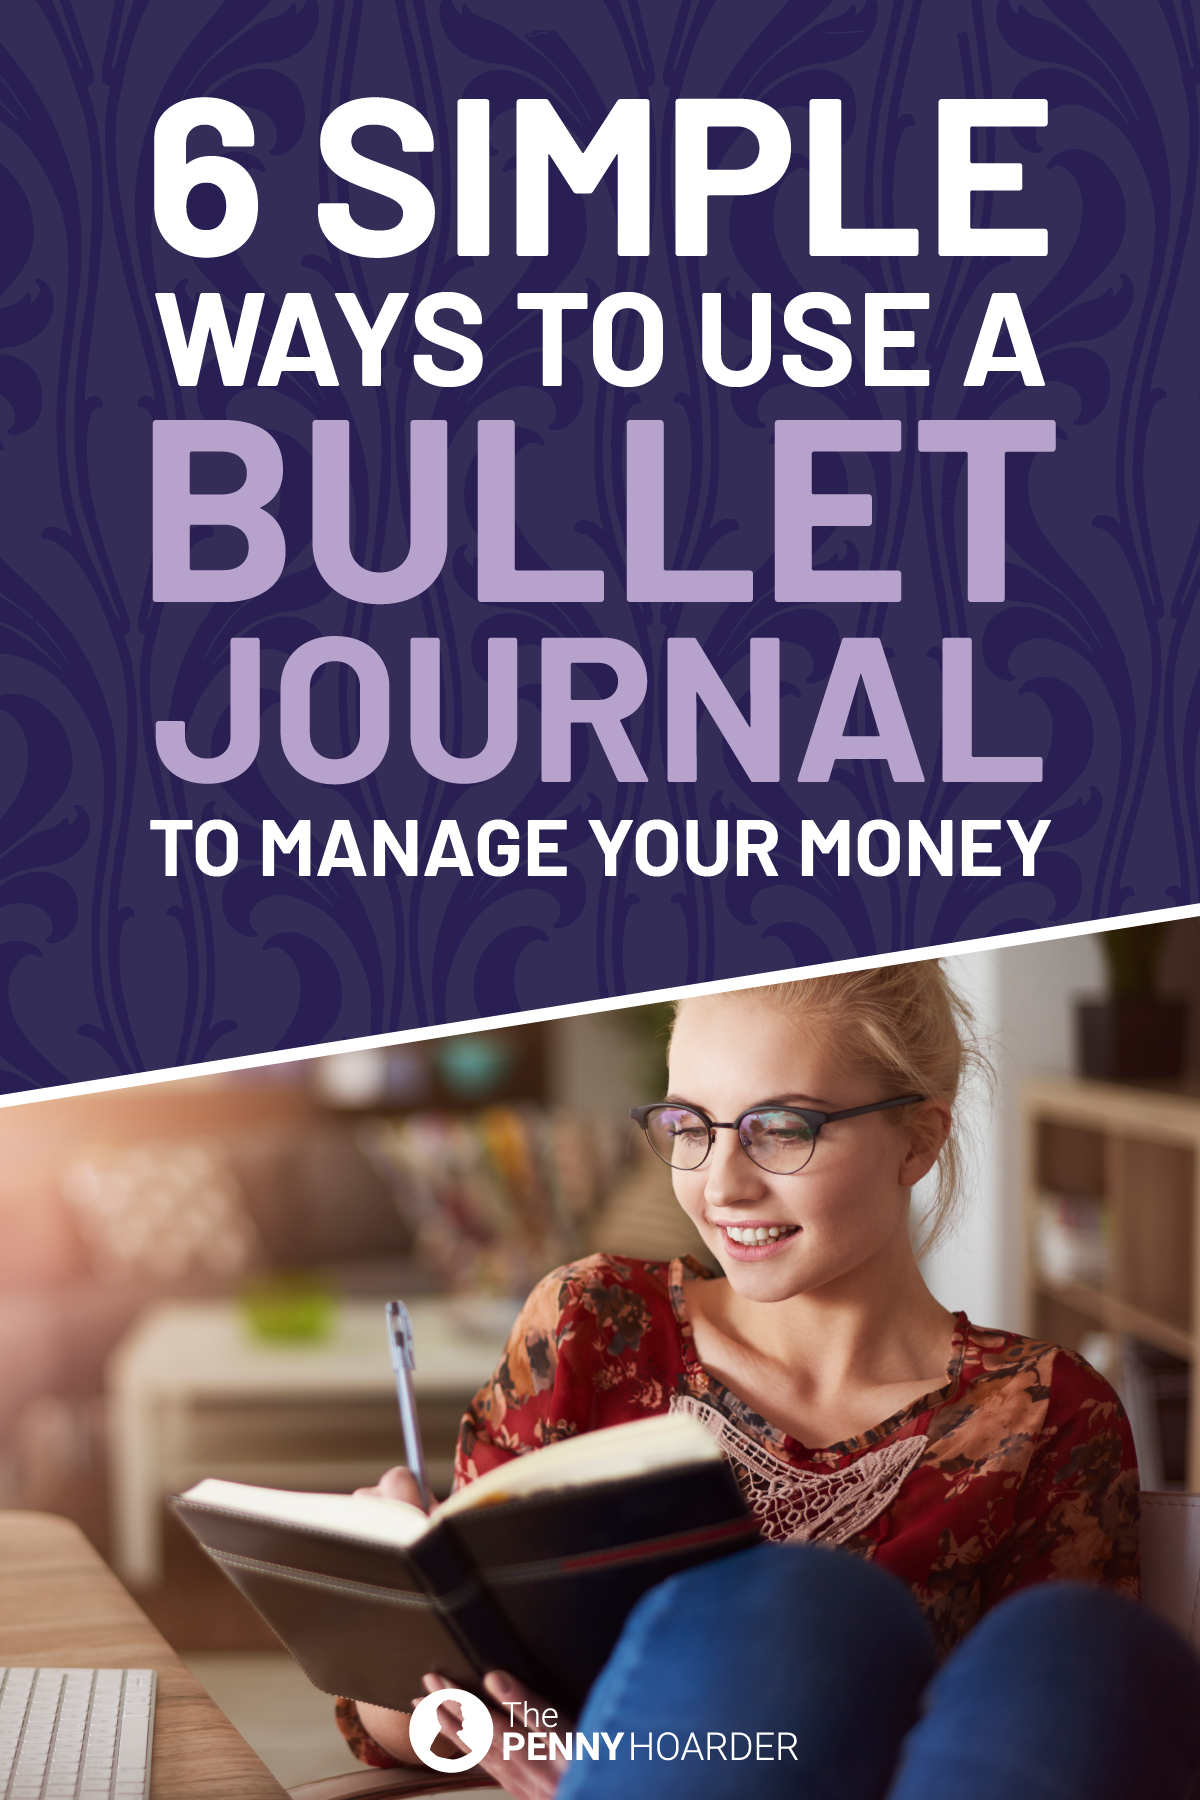 6 Simple Ways To Use A Bullet Journal To Manage Your Money